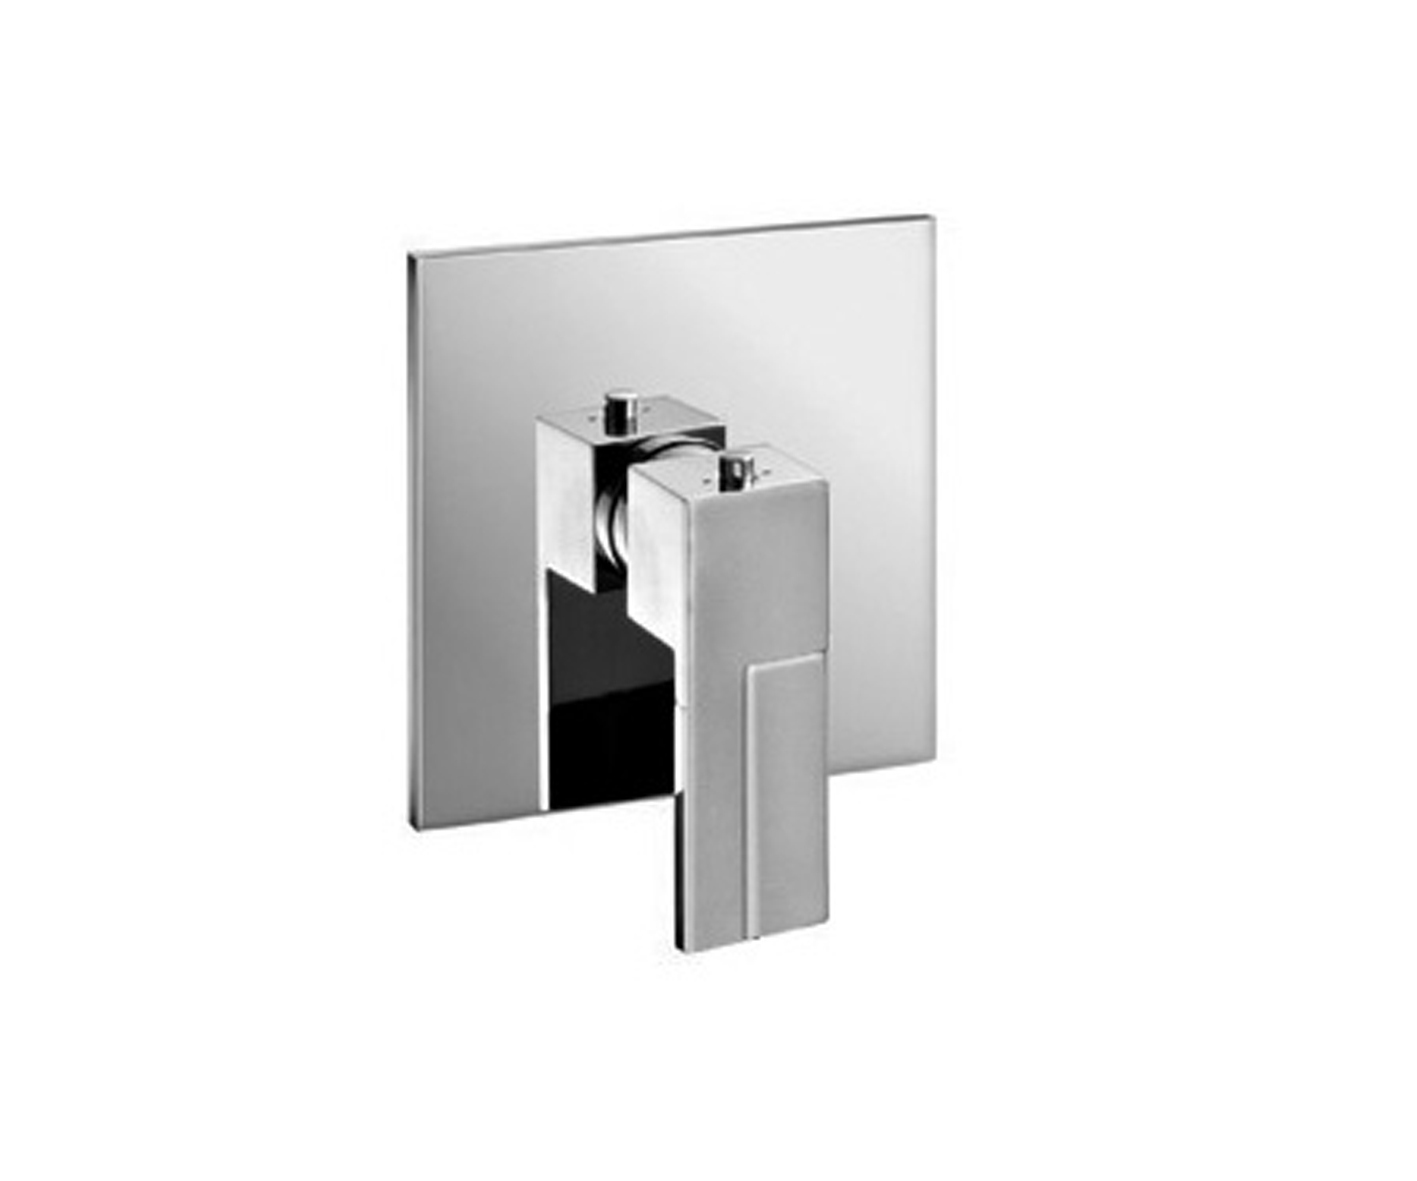 Fantini 3900SBU+4700AU Plano 3/4'' Thermostatic Mixer without Volume Control